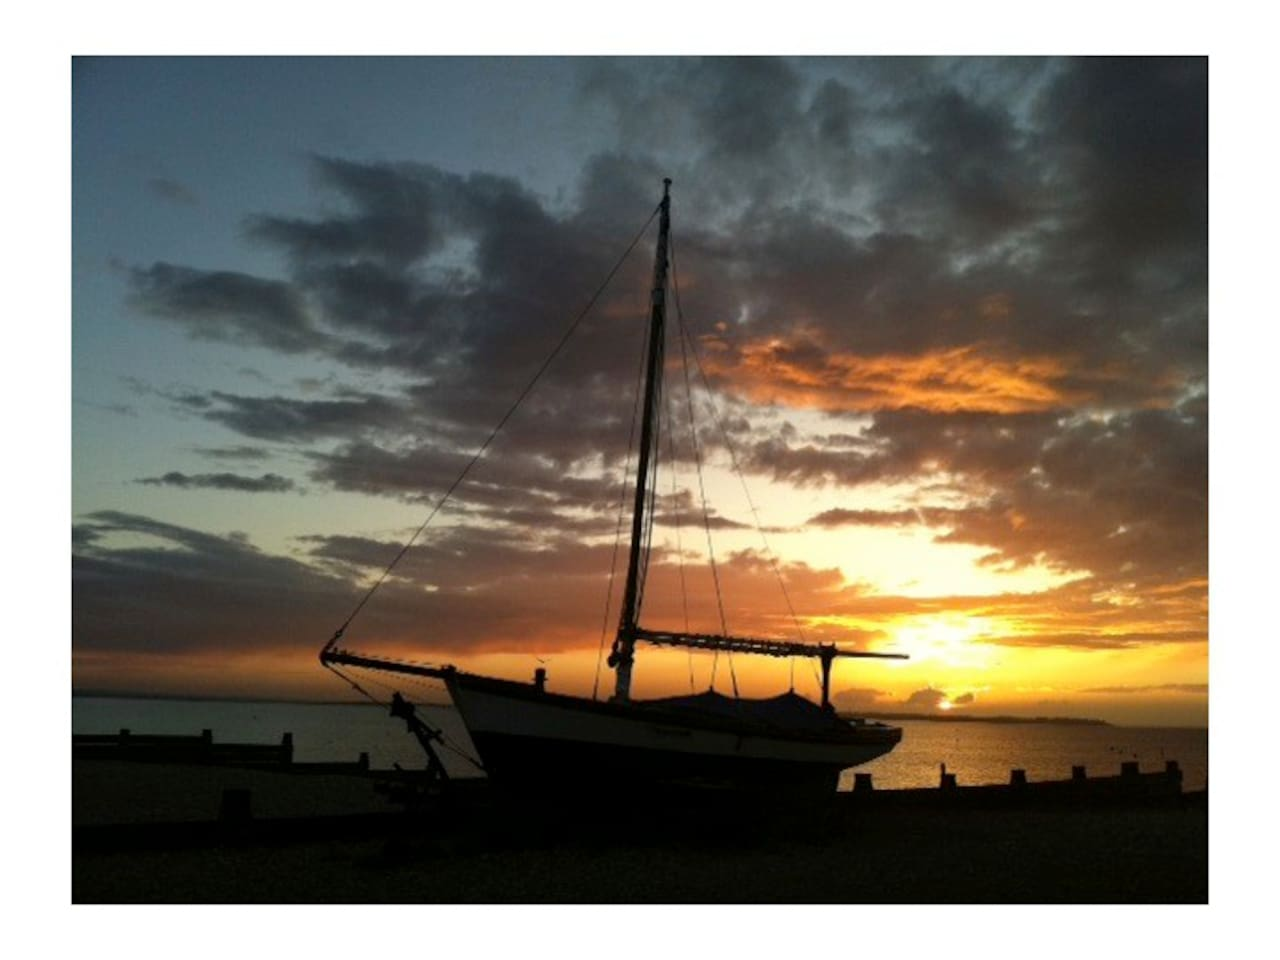 Whitstable beach has the most beautiful sunsets and is just over an hour from London.